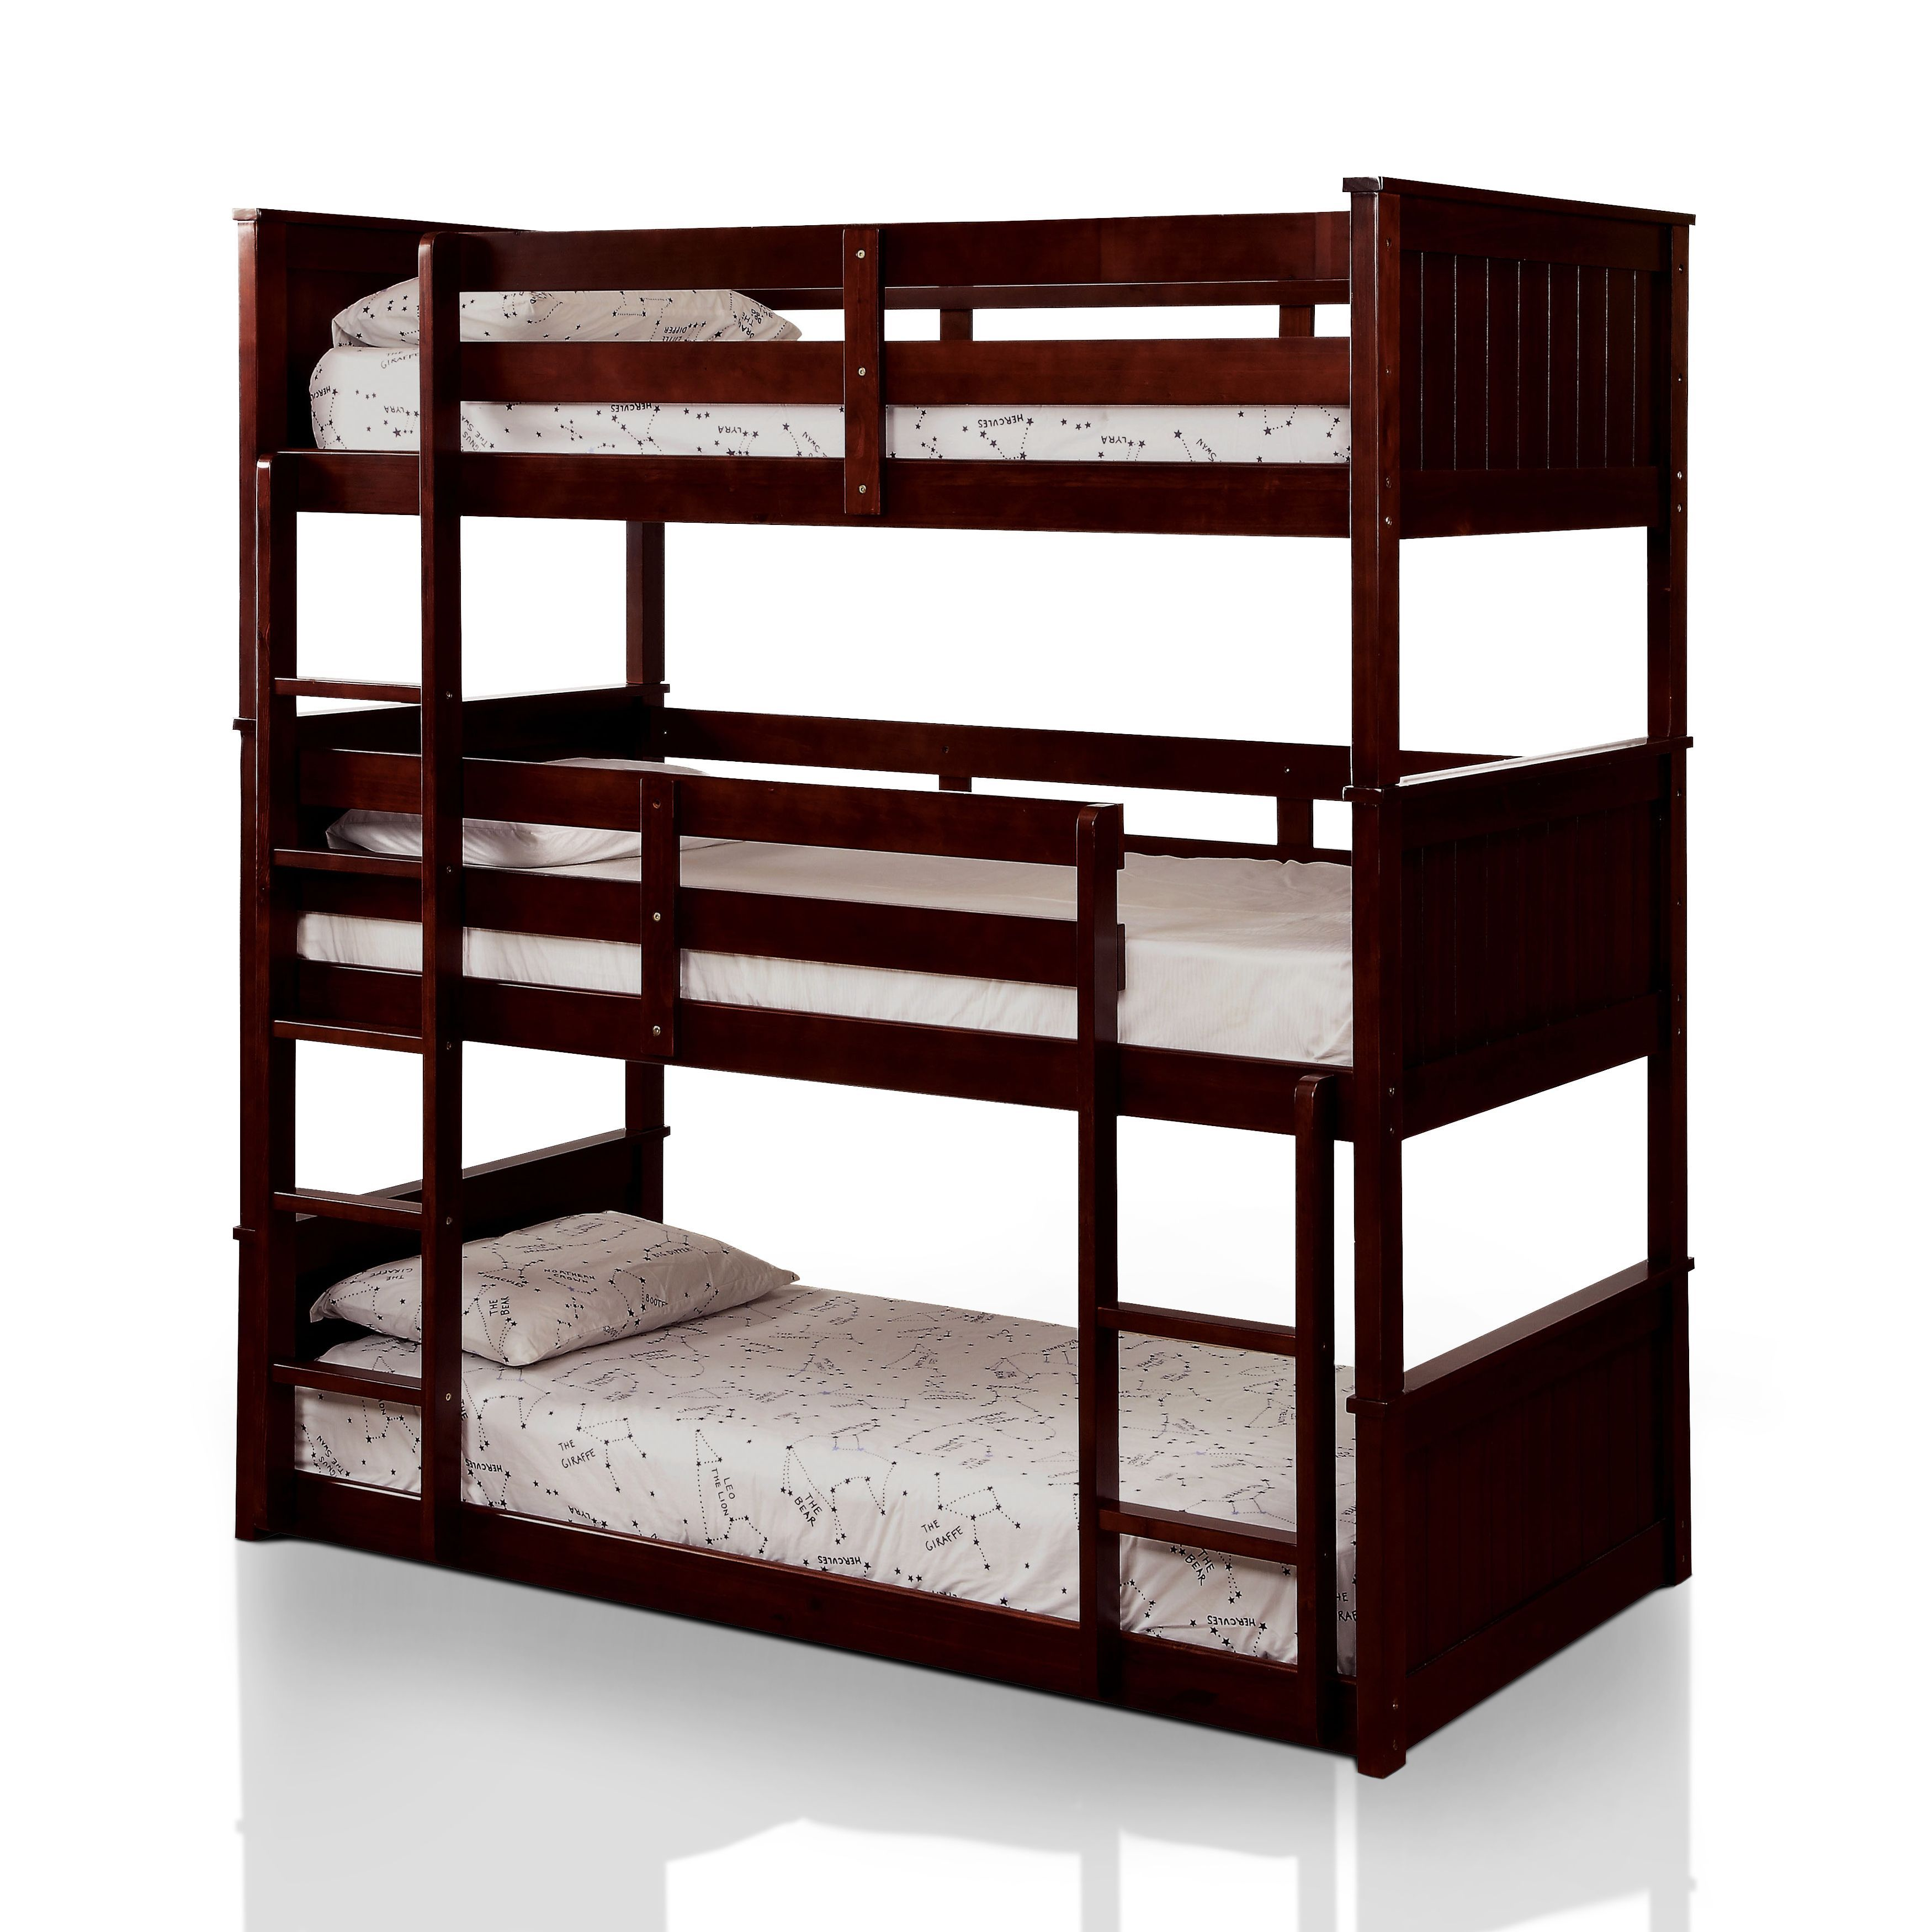 3 Twin Beds In The Space Of 1 Furniture Of America Rigson Plank Style Space Saving